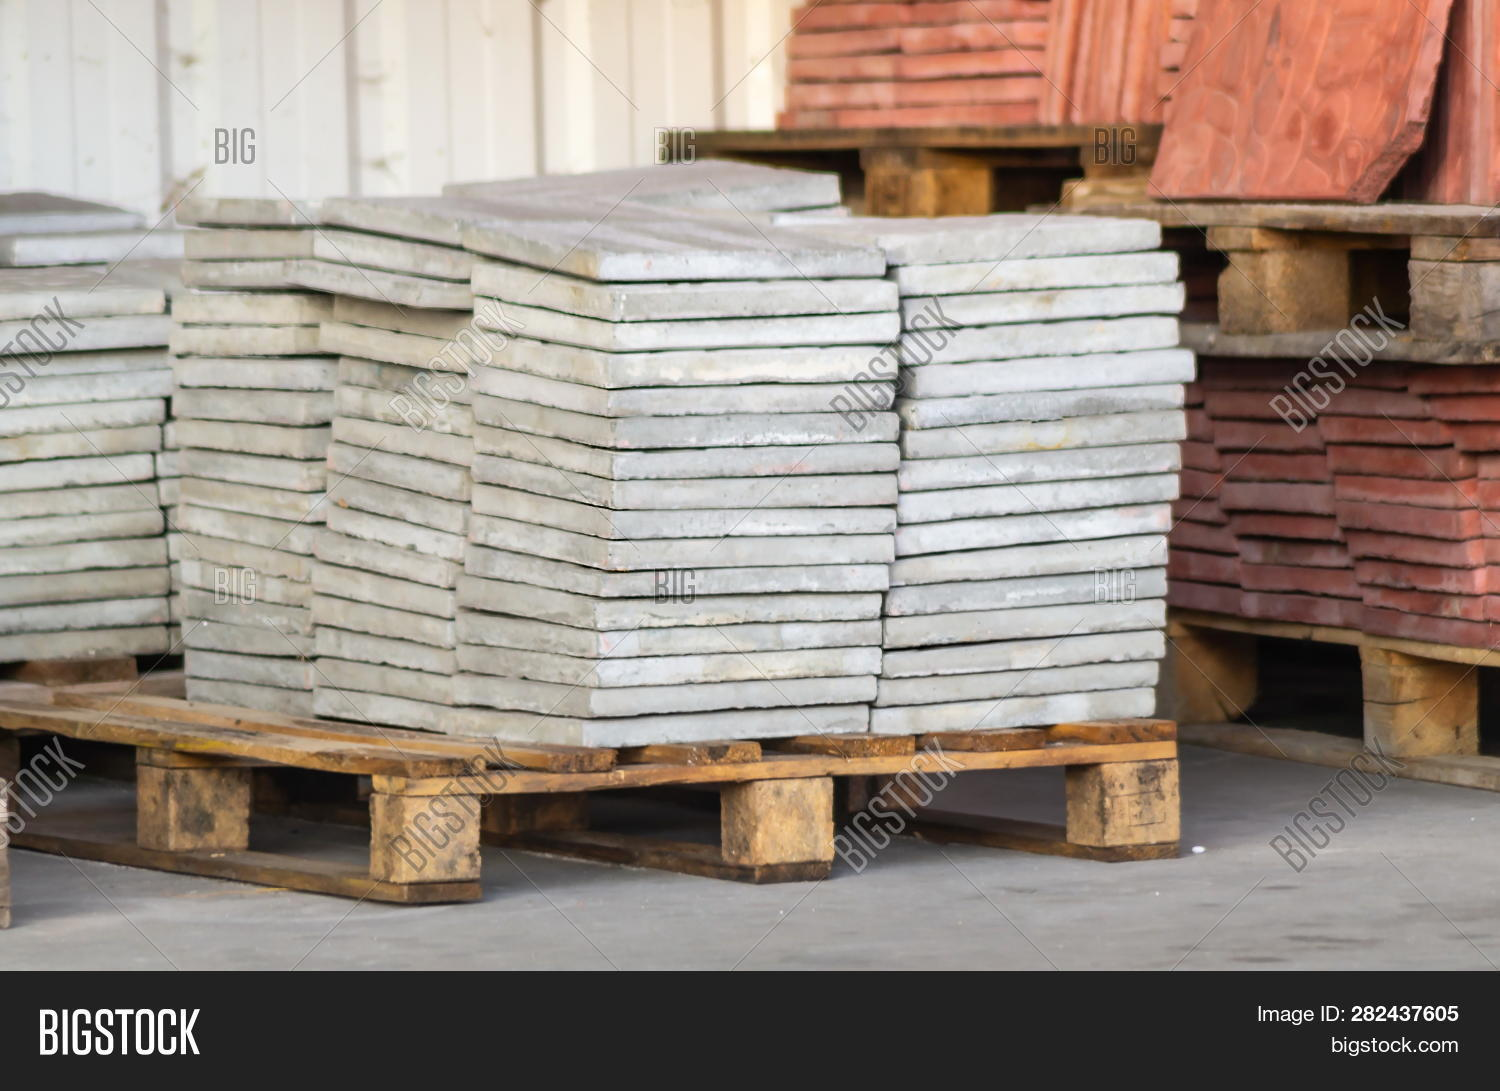 Paving Slabs Factory  Image & Photo (Free Trial) | Bigstock